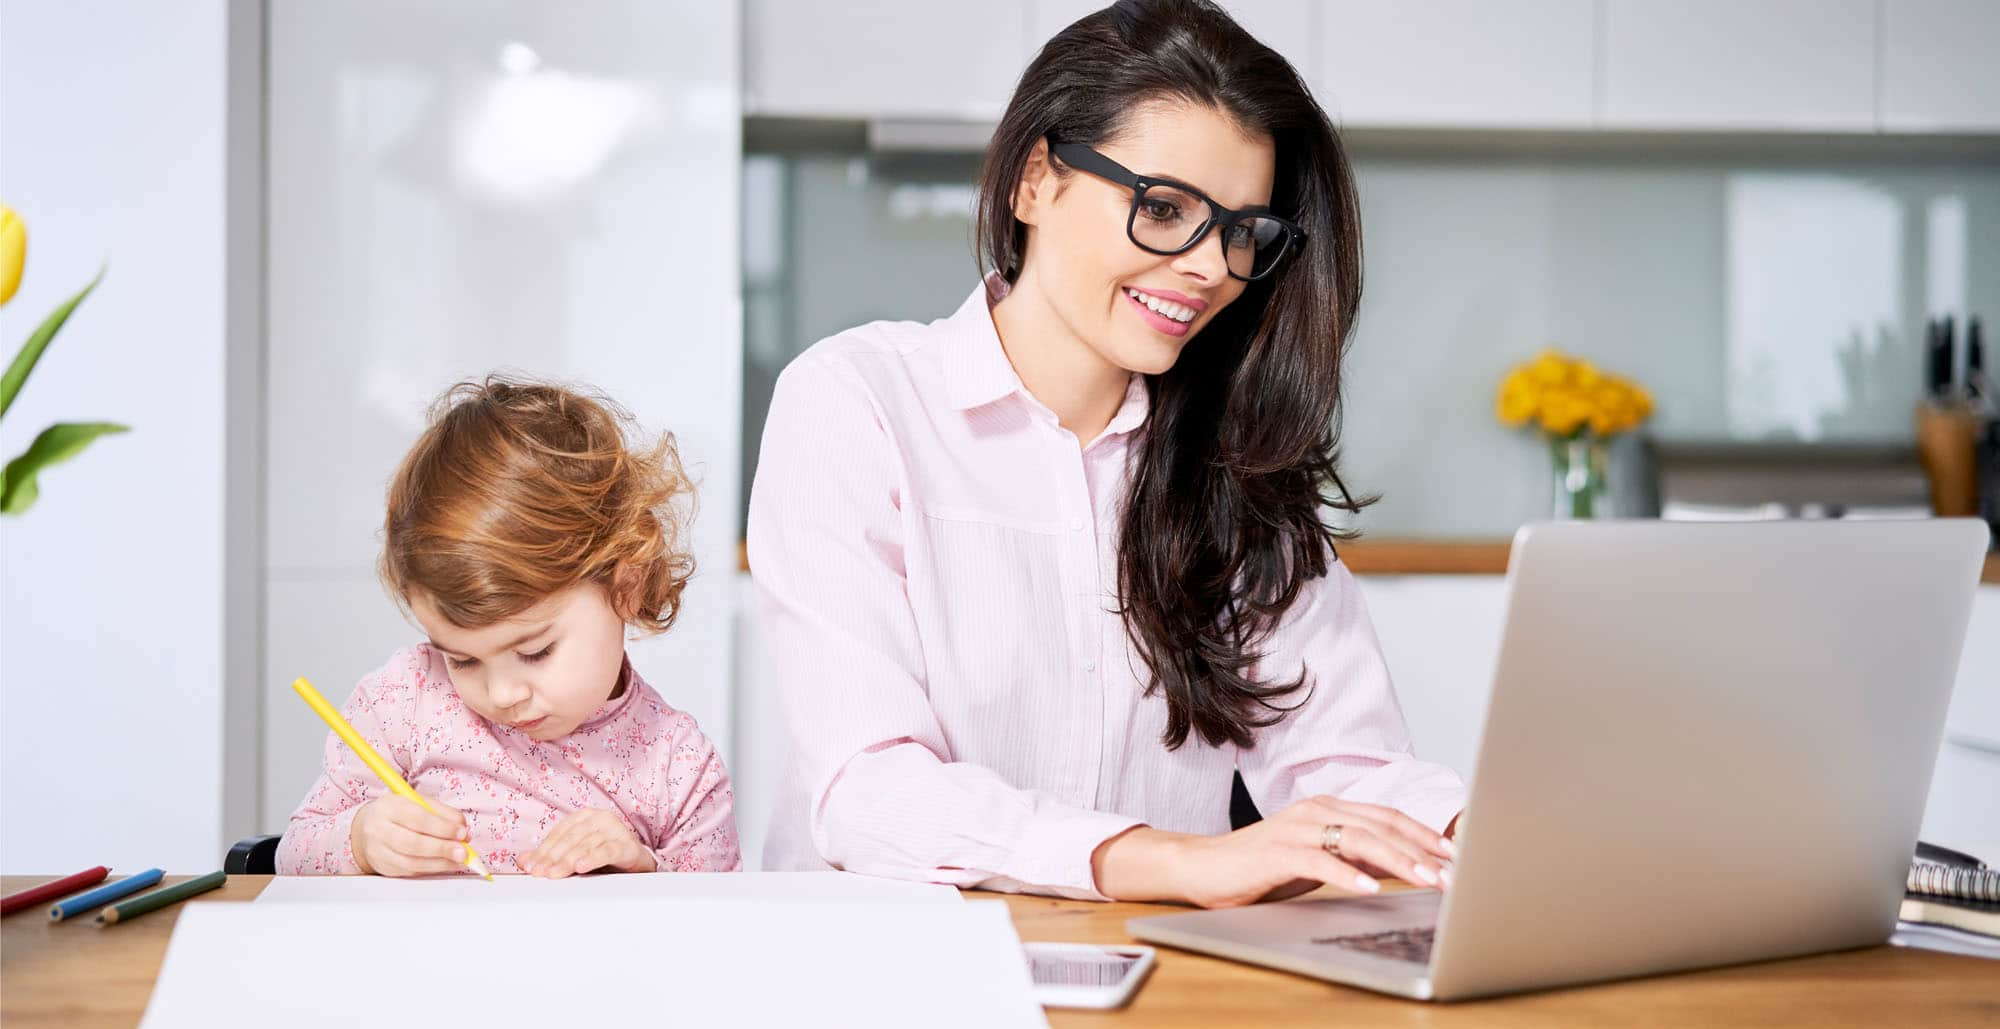 parenthood - Addressing the Employment Gap Attributed To Parenthood